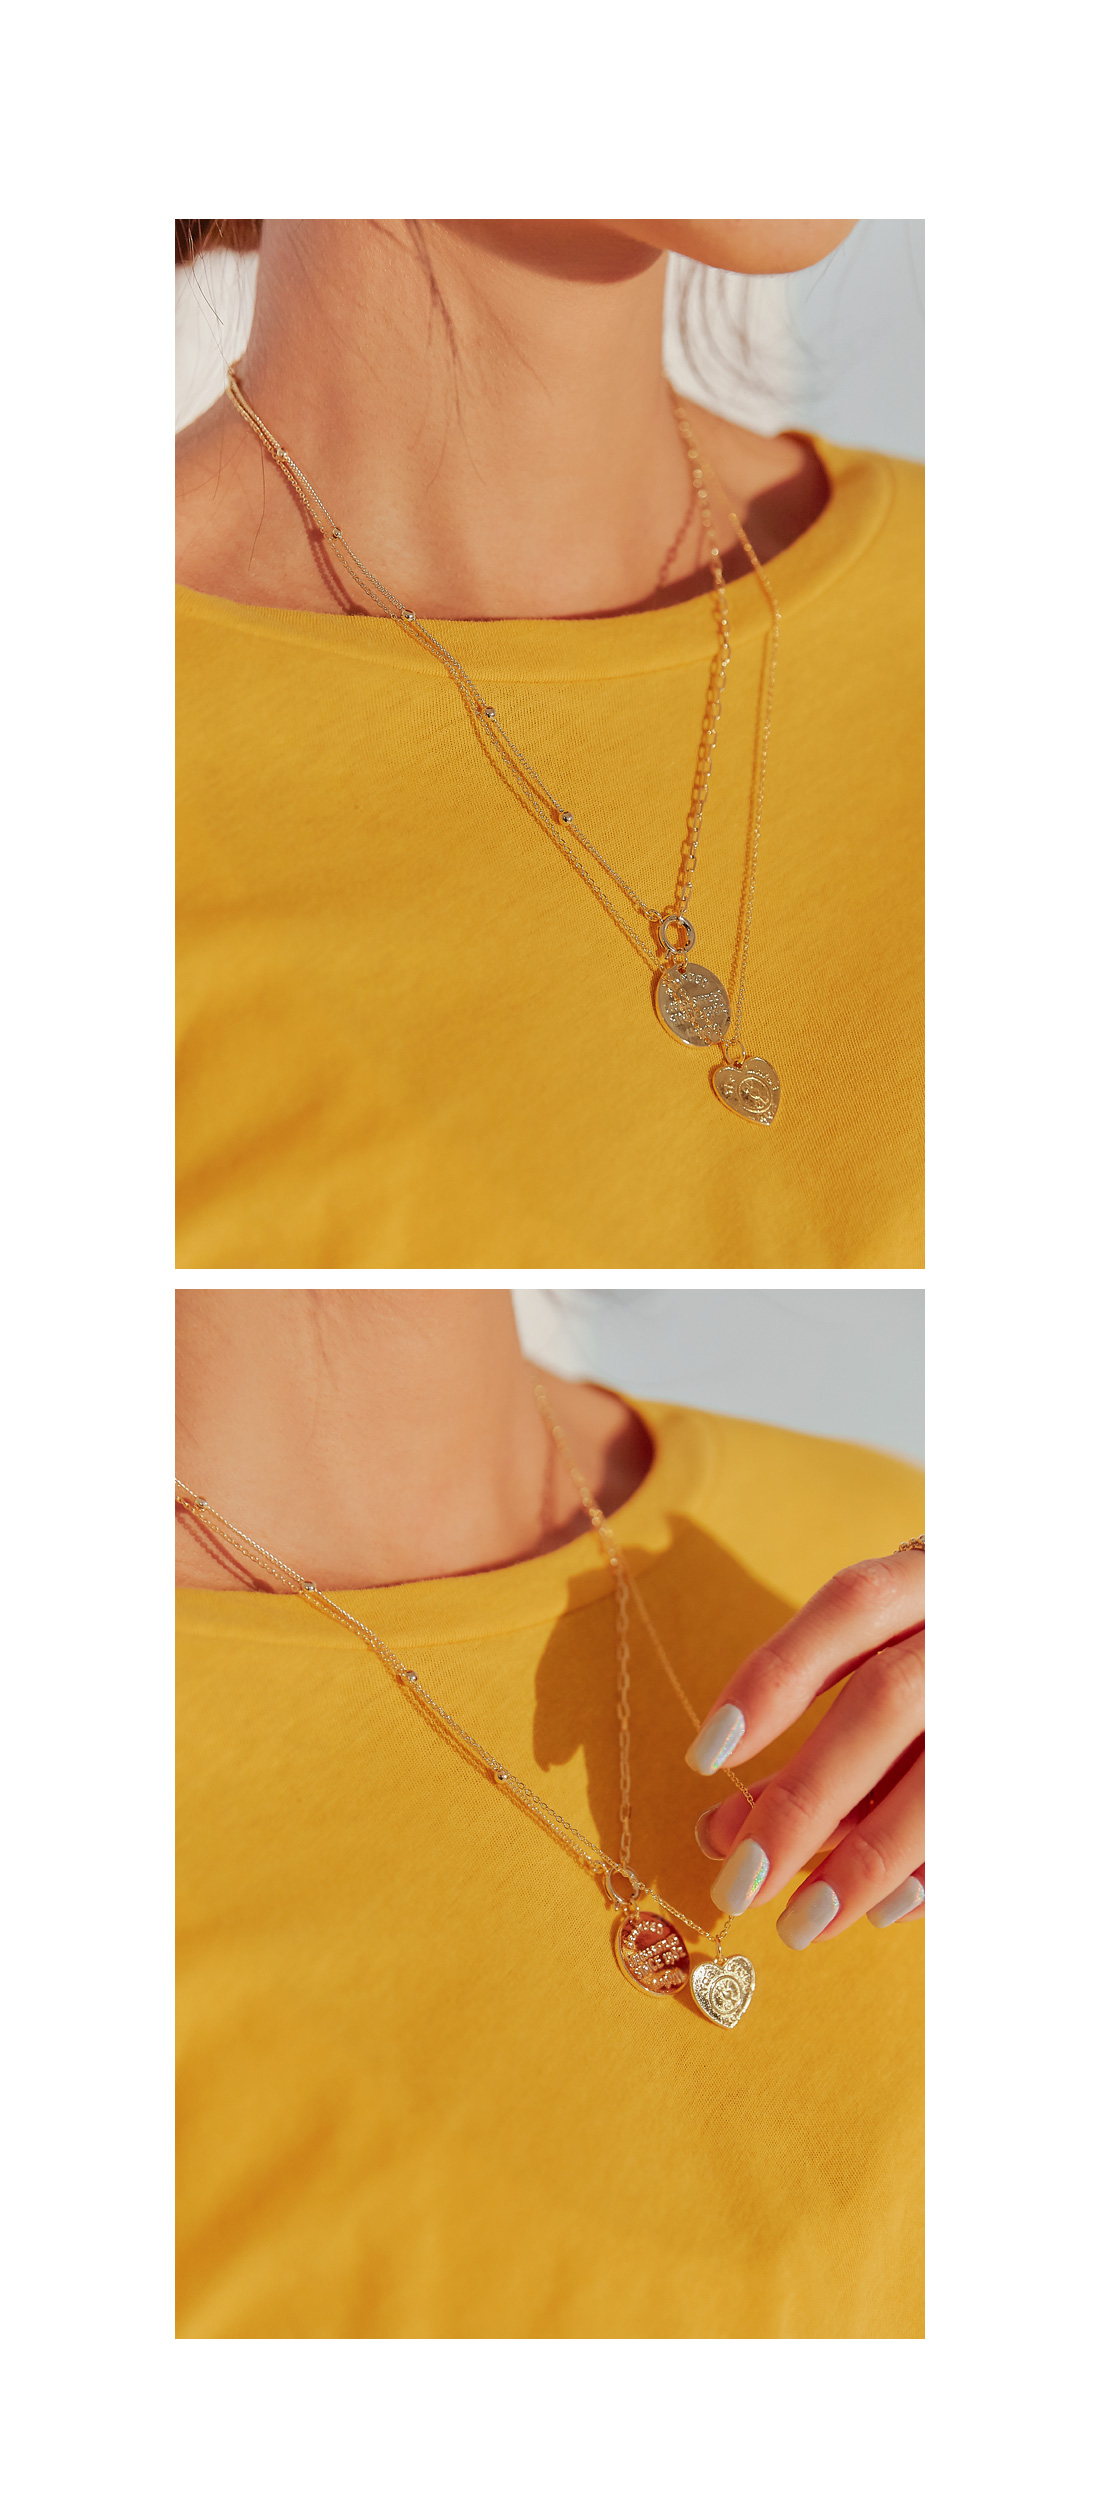 MAYBE HEART PENDANT NECKLACE